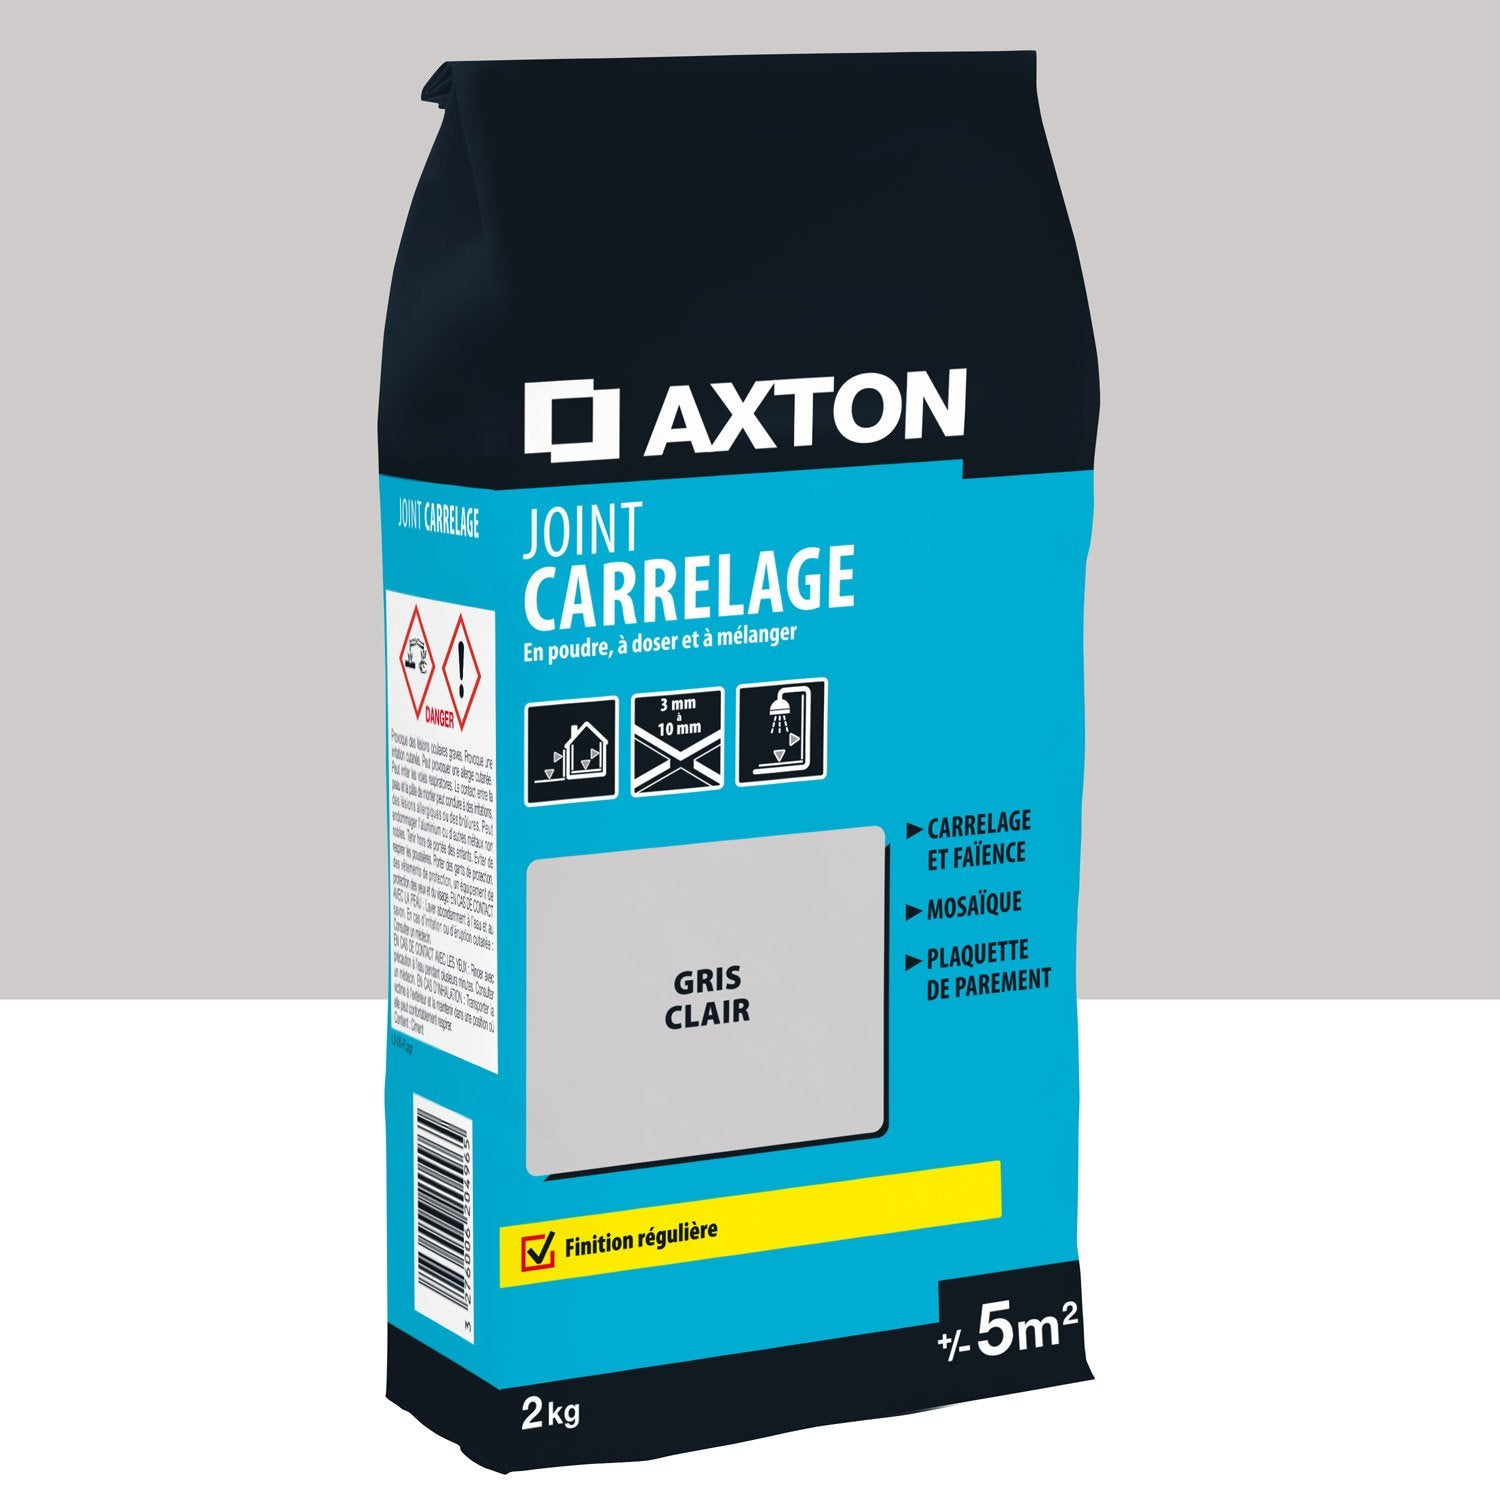 Joint Poudre Axton Axton Joint Carrelage Gris Clair 5m²